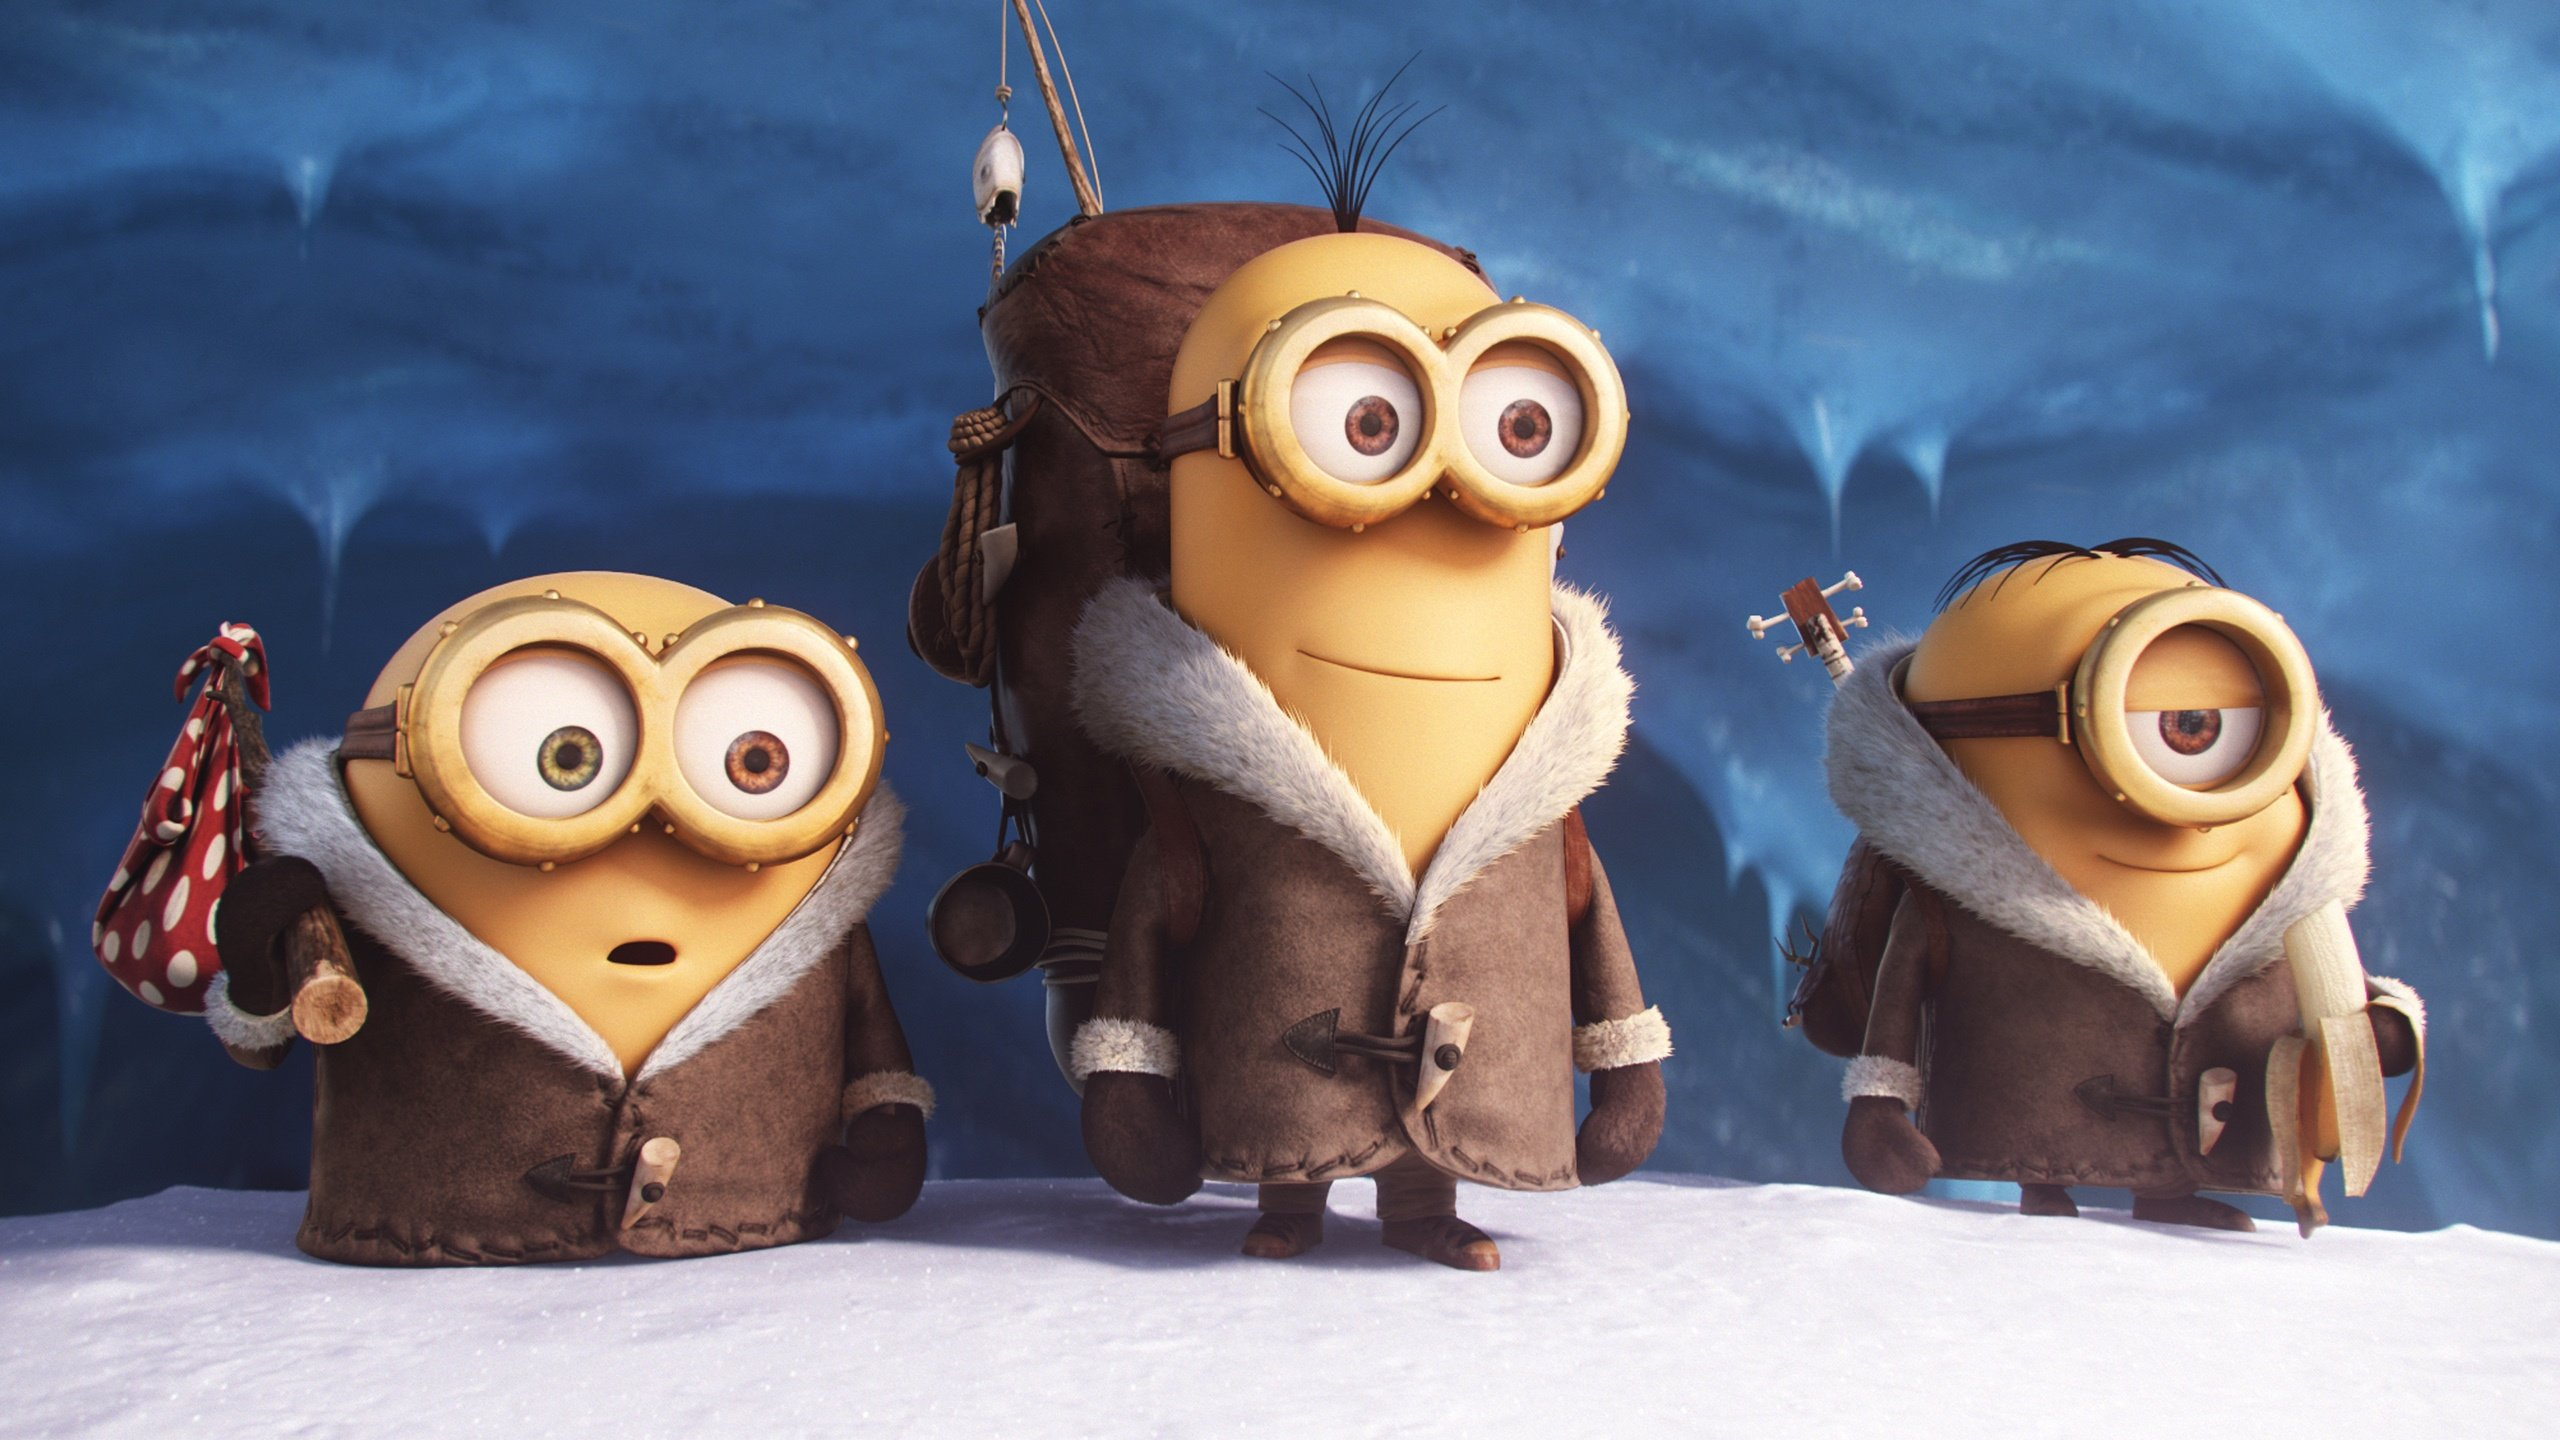 Download hd 2560x1440 Minions PC wallpaper ID:70235 for free